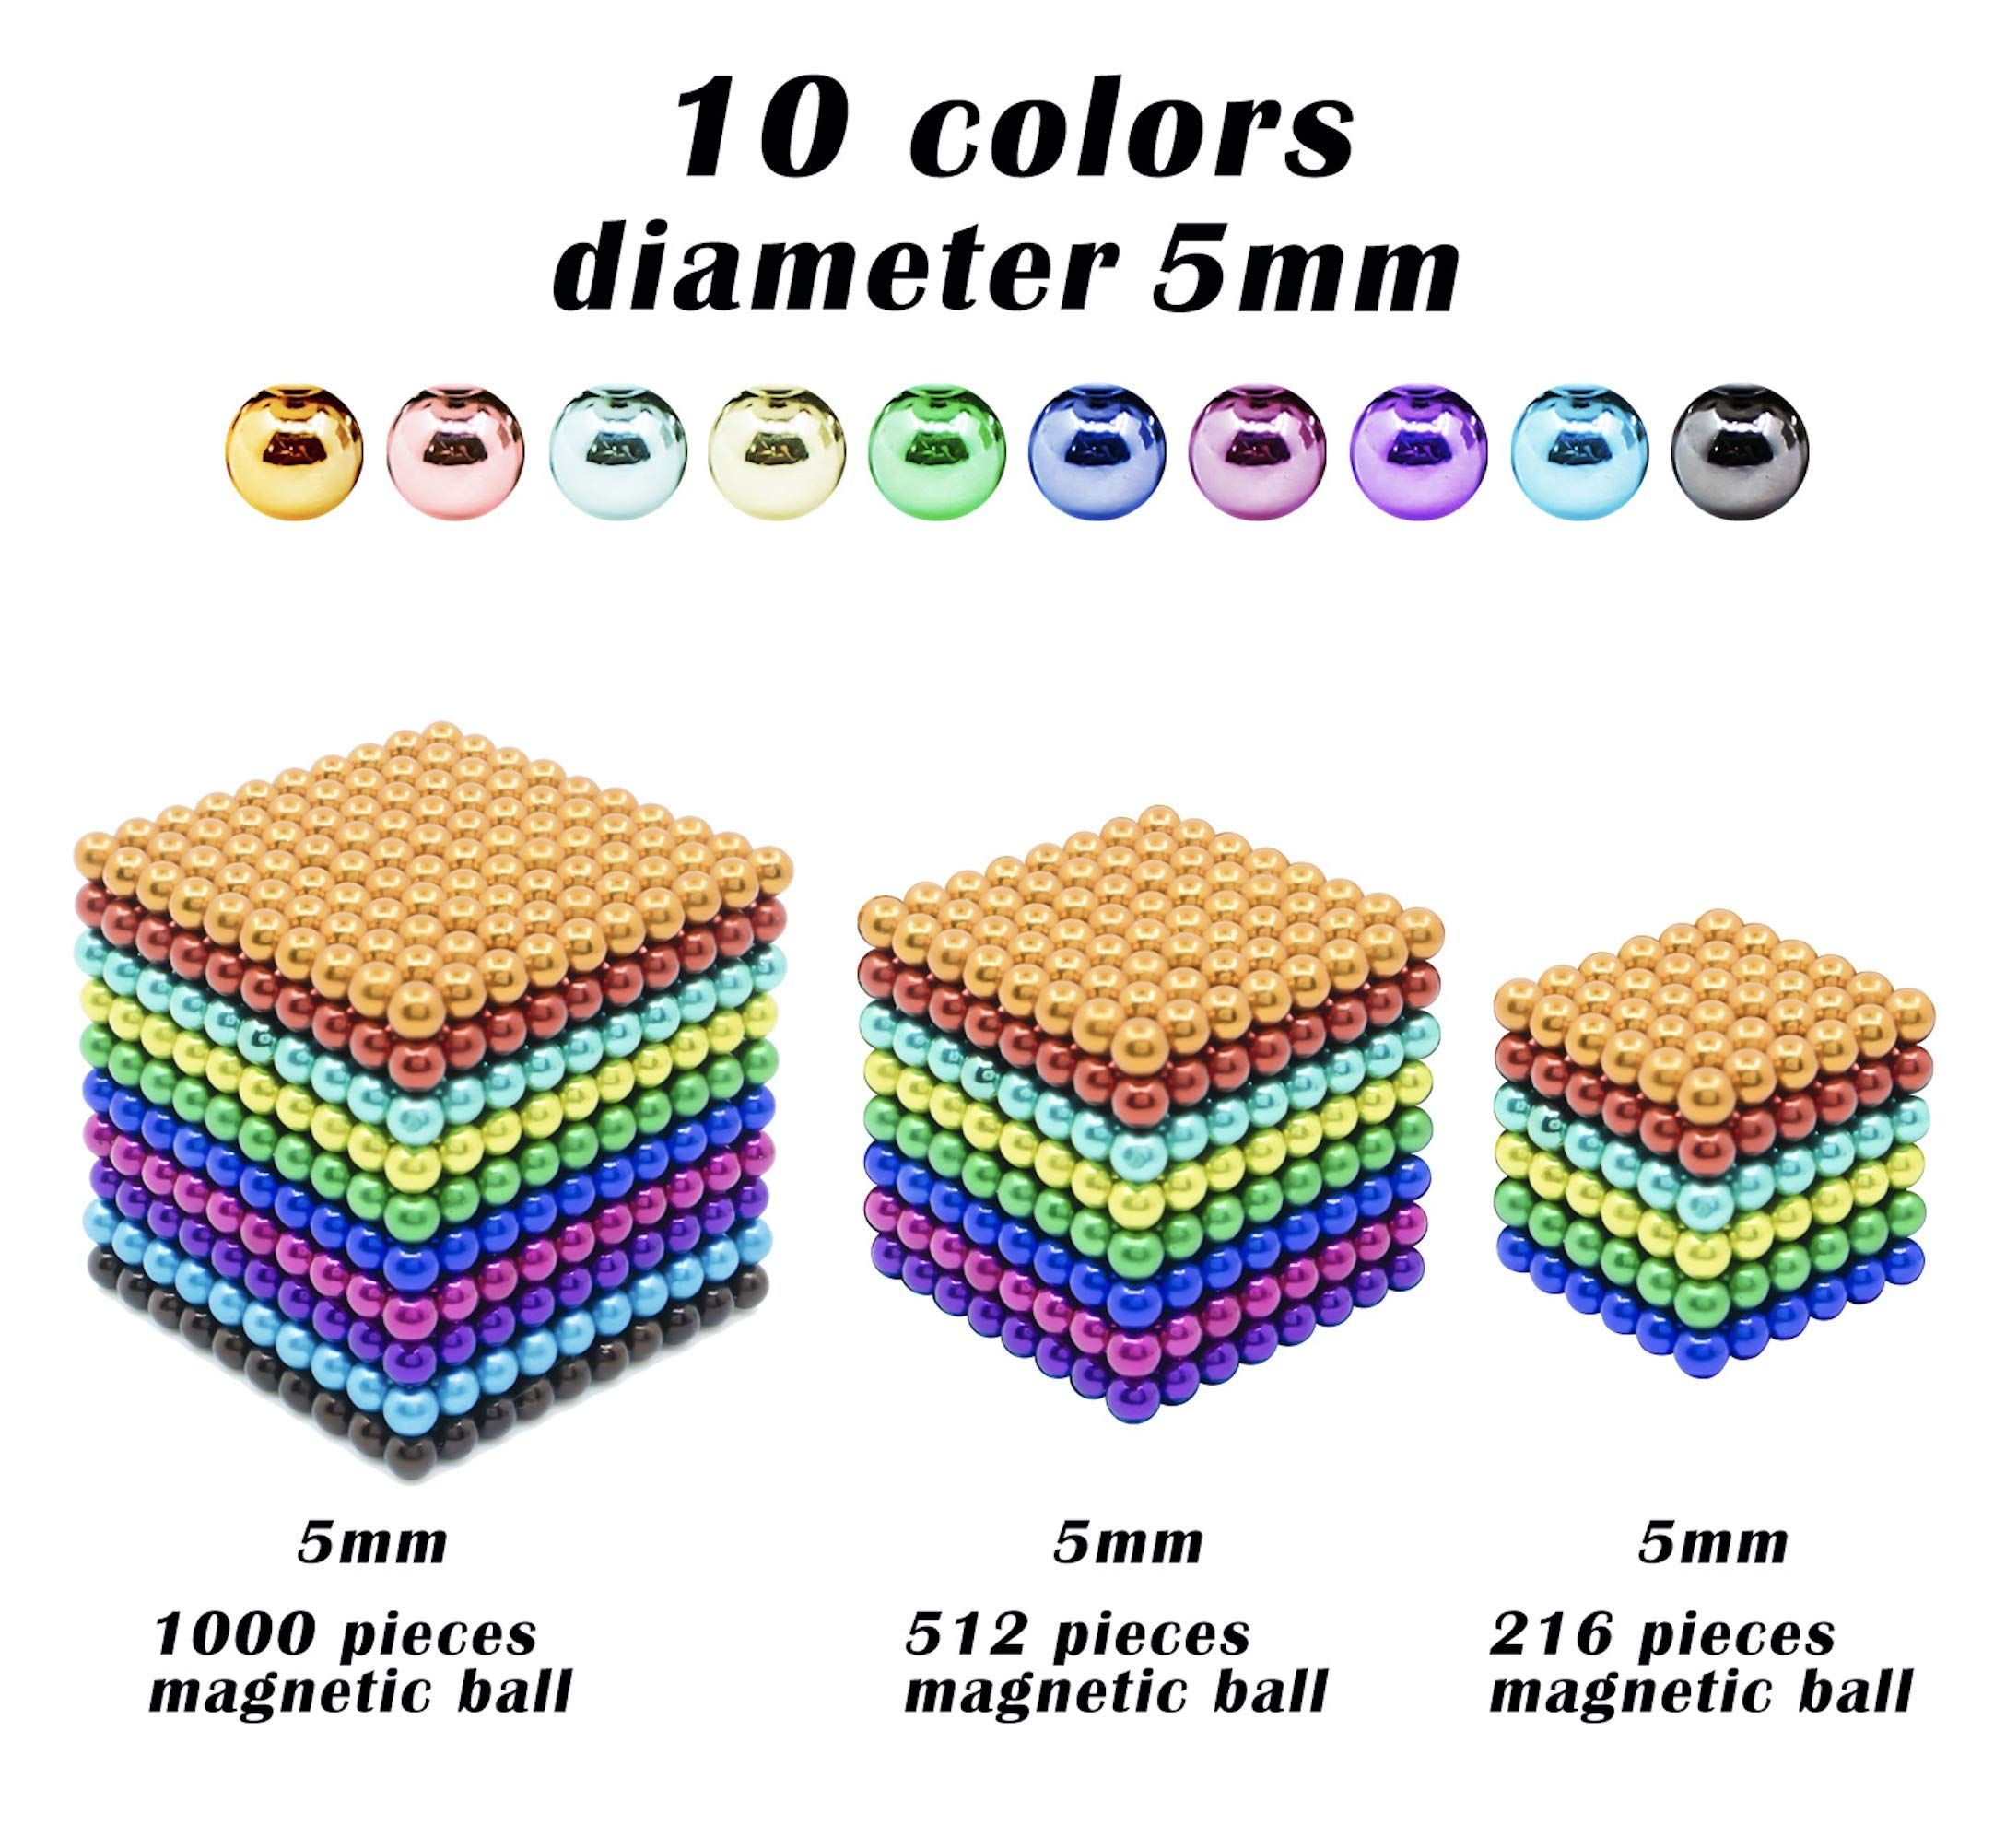 sunsoy 1000 Pieces 5mm Sculpture Building Blocks Toys for Intelligence Learning -Office Toy & Stress Relief for Adults Colorful by sunsoy (Image #1)